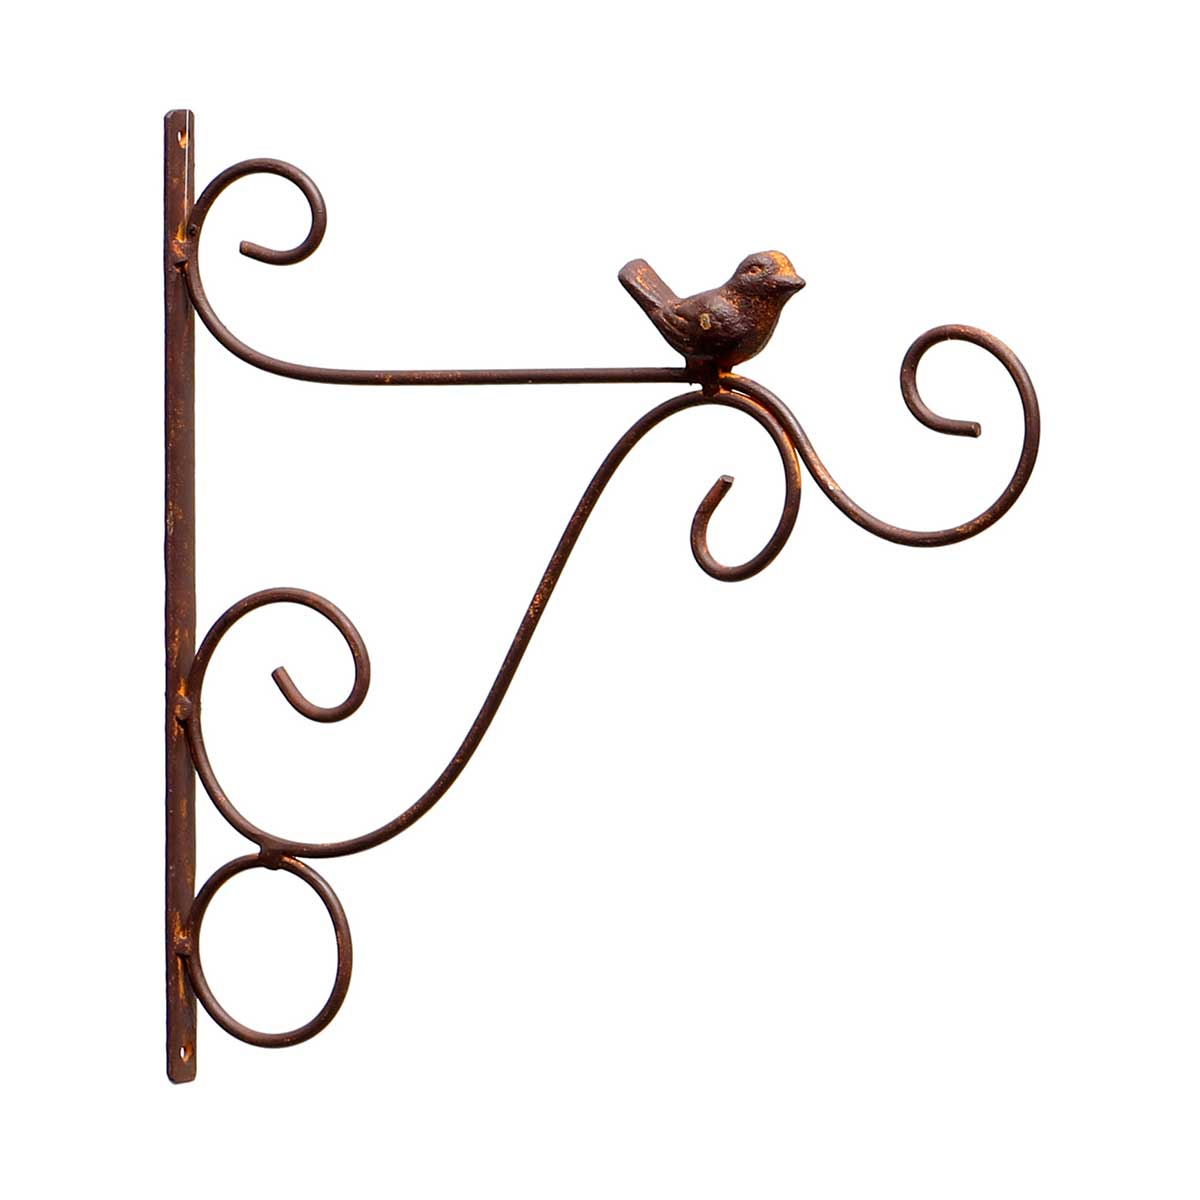 "METAL BIRD AND SCROLL HANGER 11.5""x.5""x11.75"""